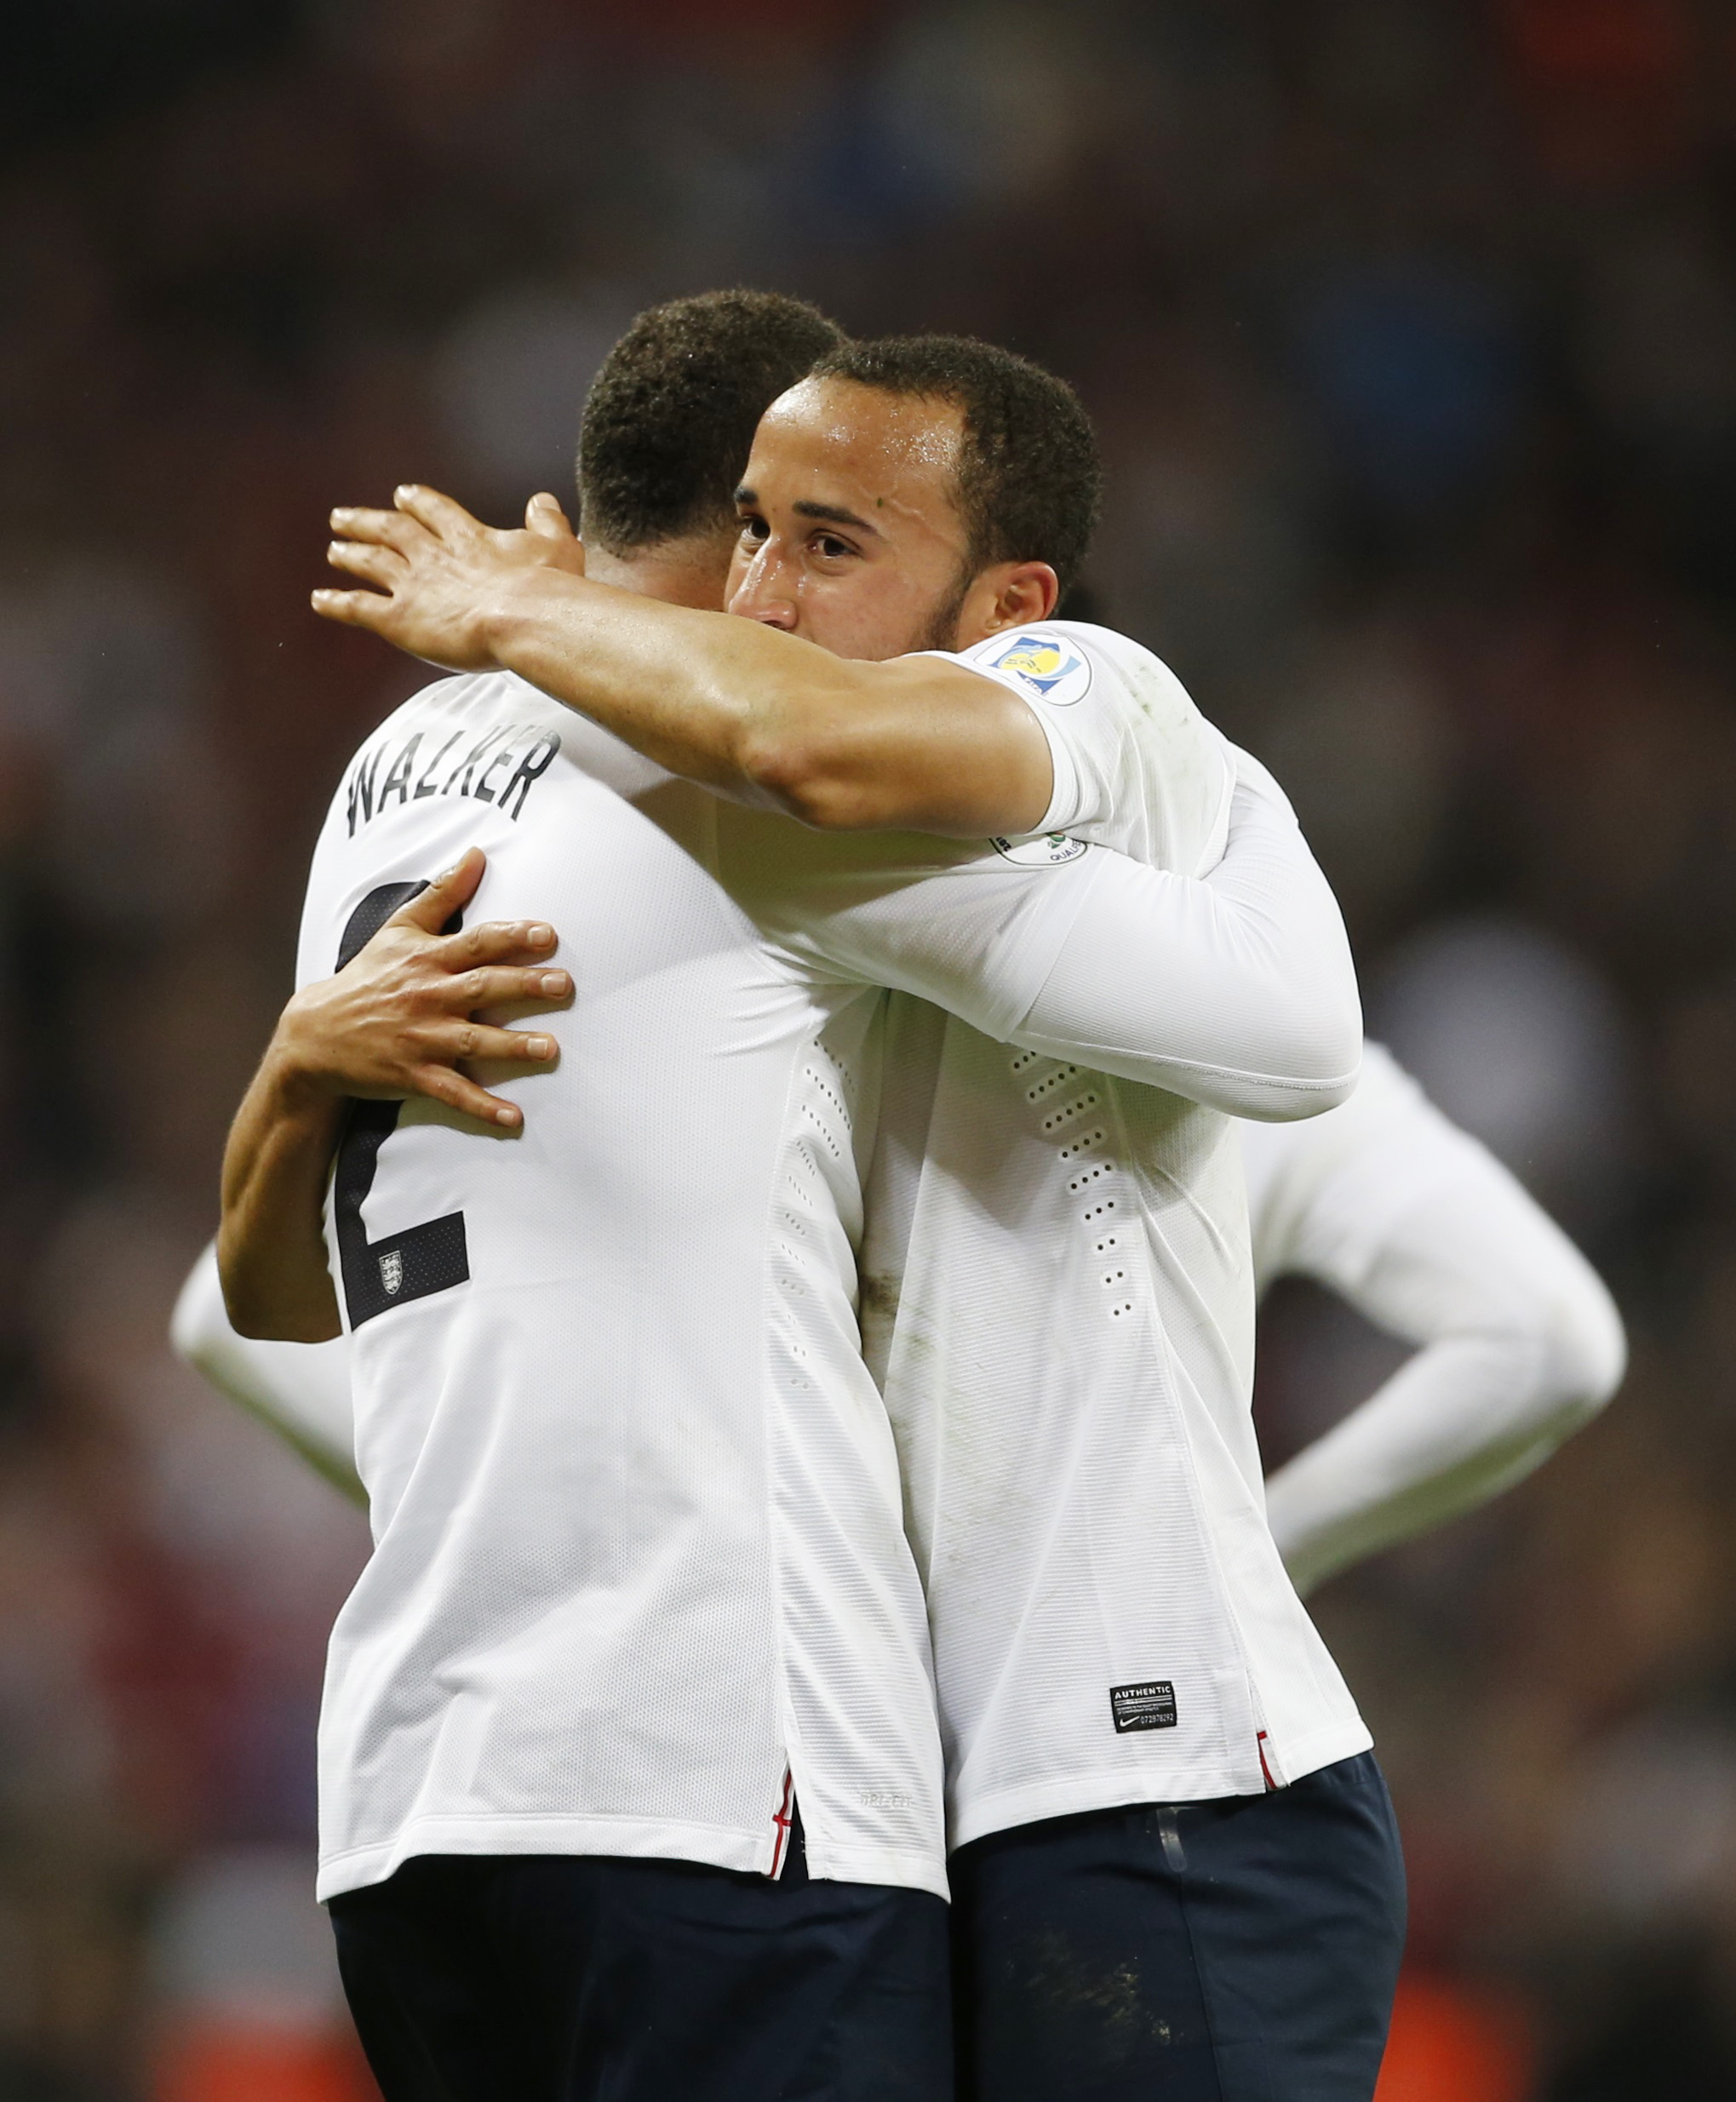 Kyle Walker congratulates Spurs teammate Andros Townsend. Picture: Action Images